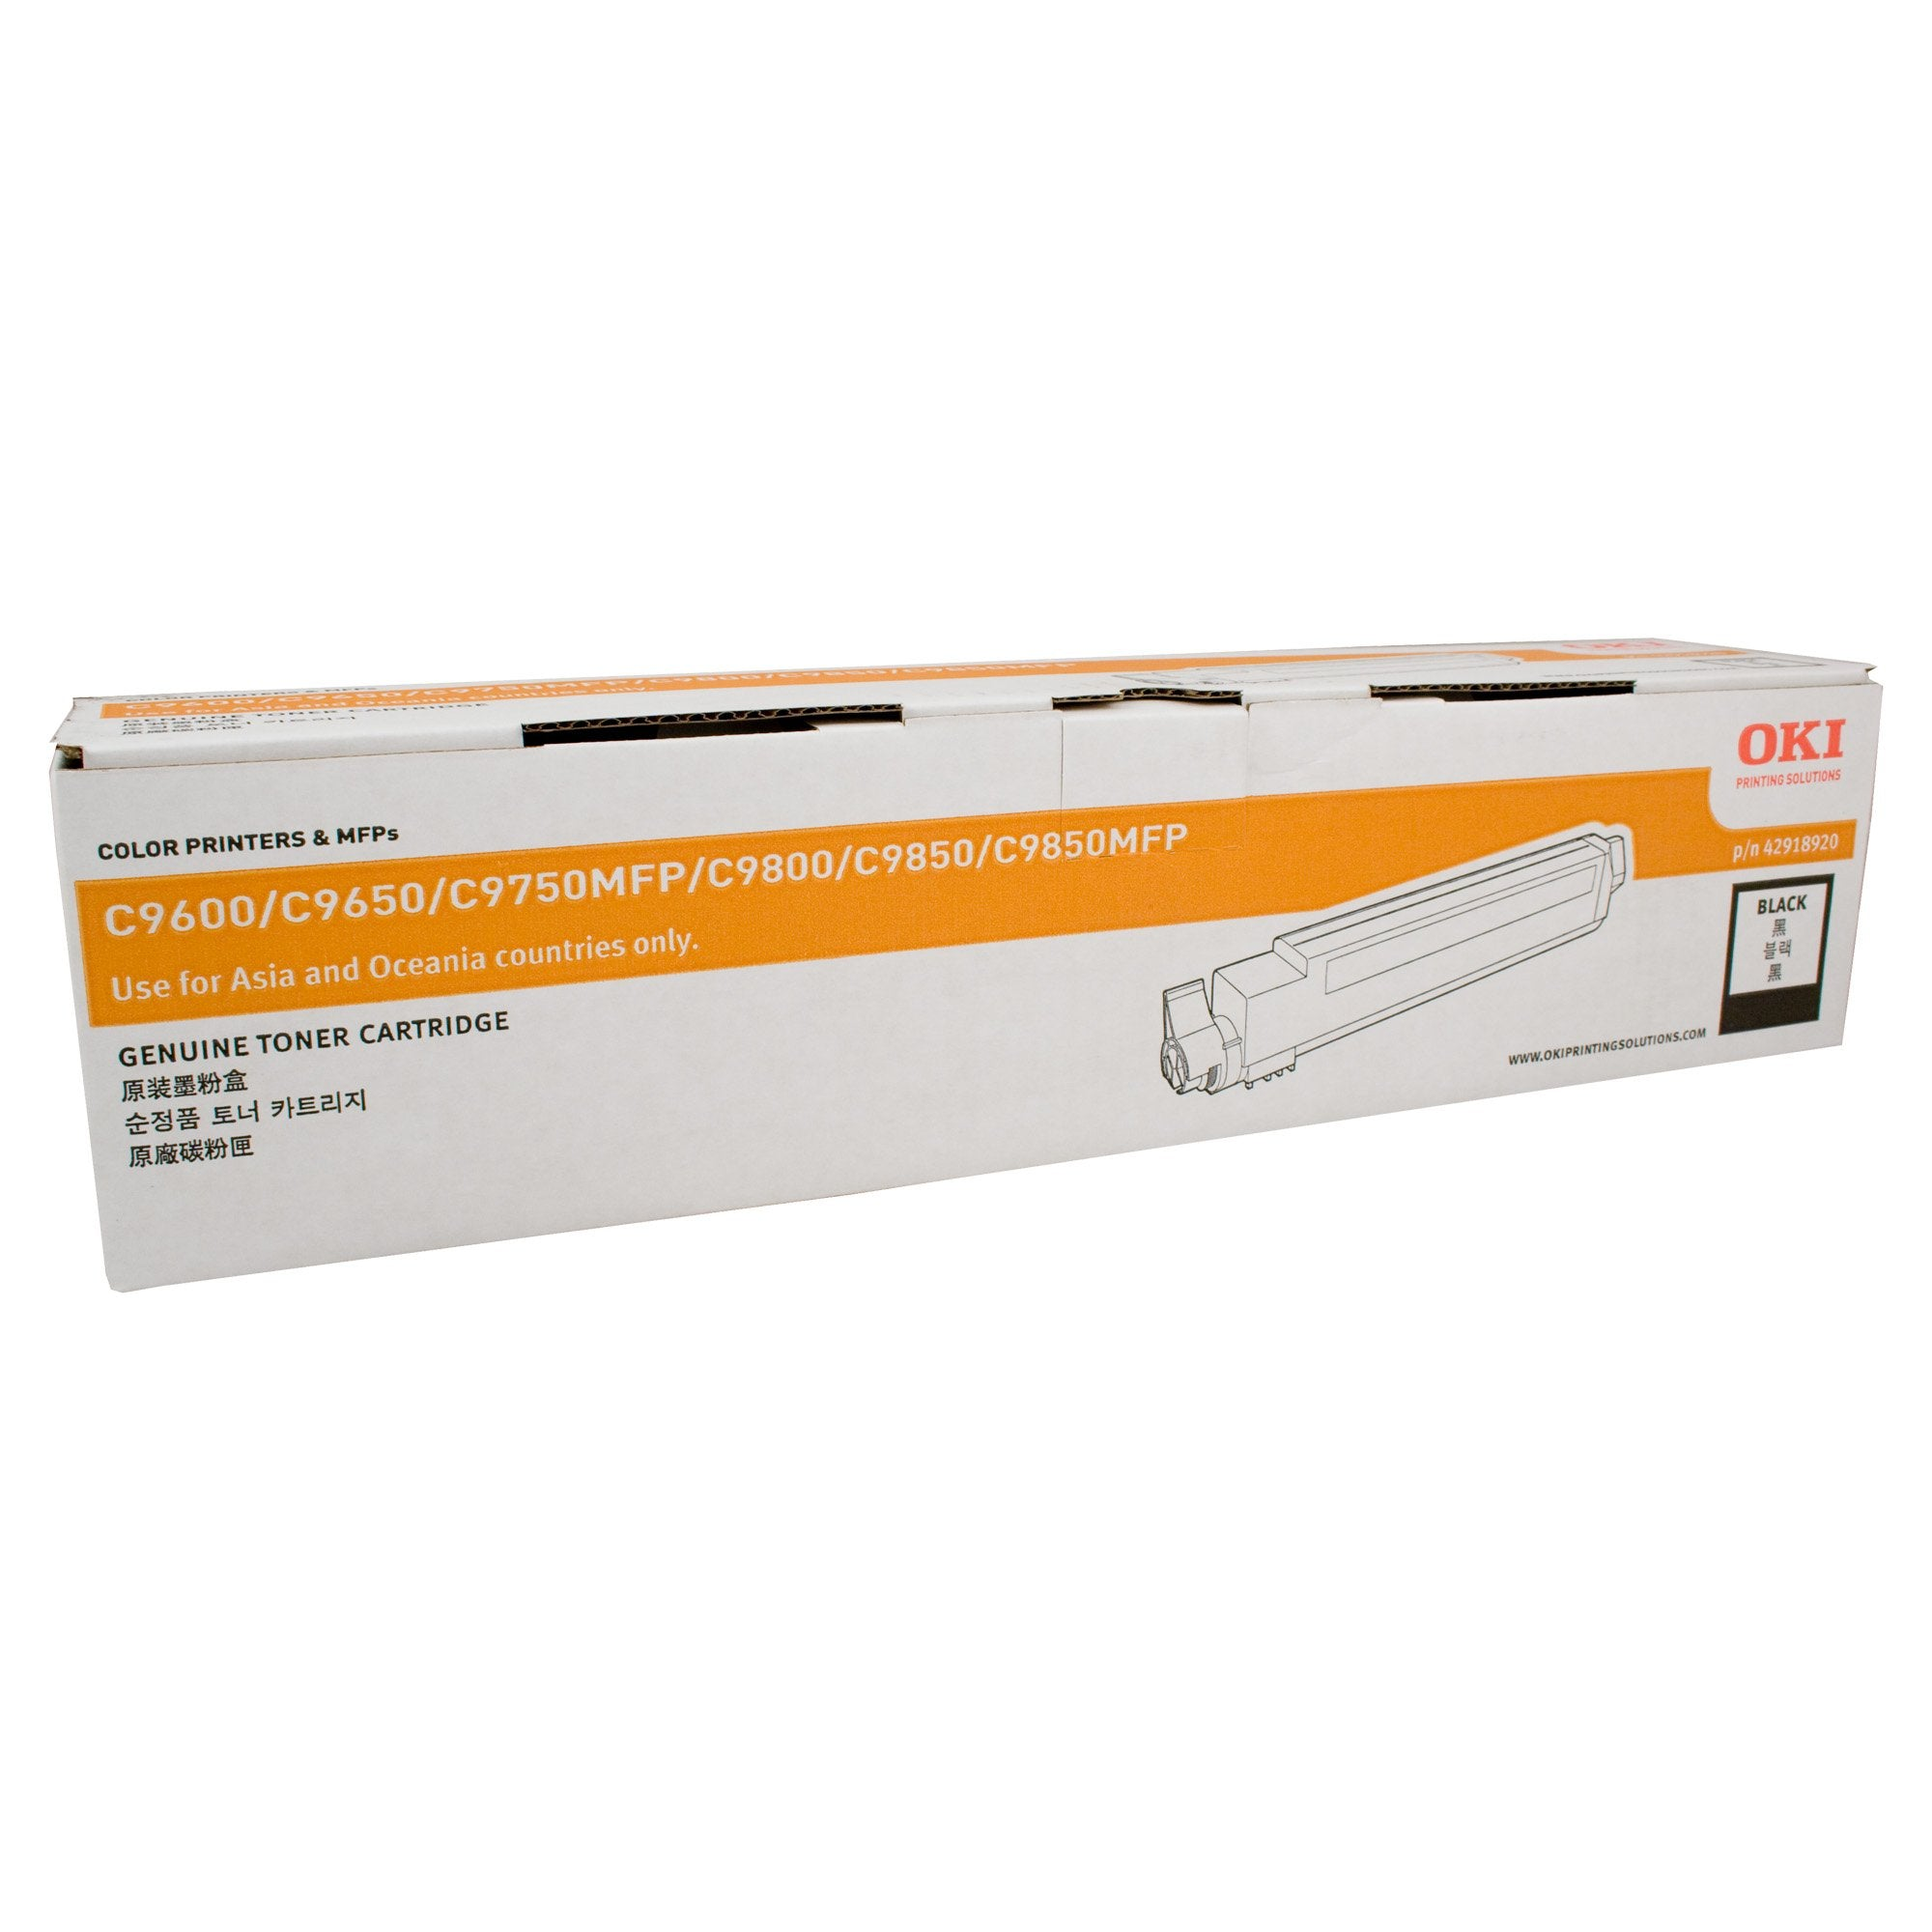 OKI 42918920 Black Toner Cartridge